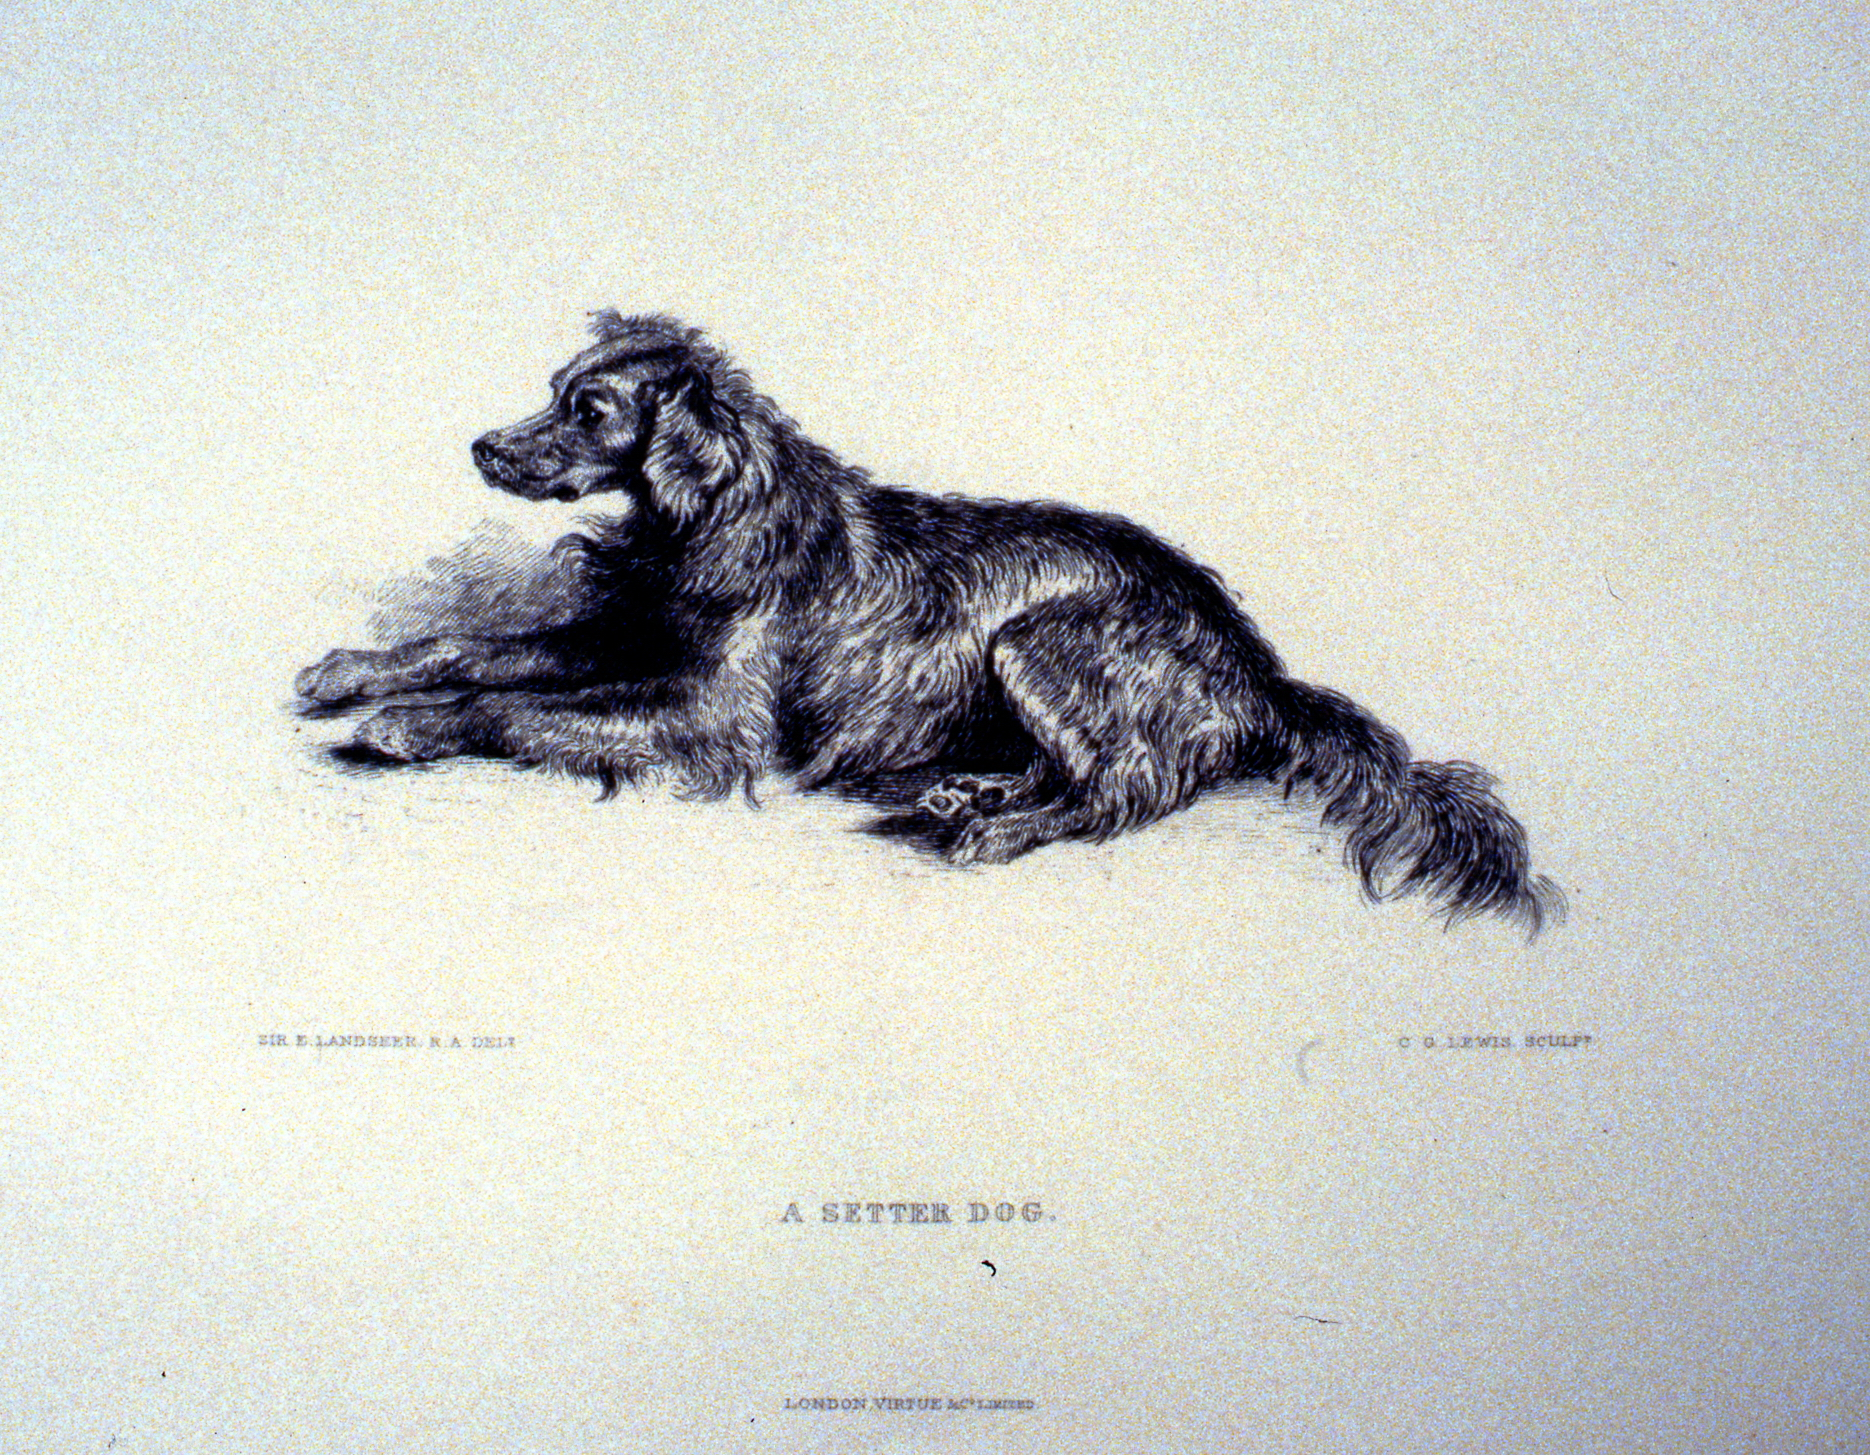 A Setter Dog , c. late 19th Century, Charles G. Lewis, steel engraving, approx. 12 cm x 21 cm, 1996.08.40, gift of Yvonne Adams